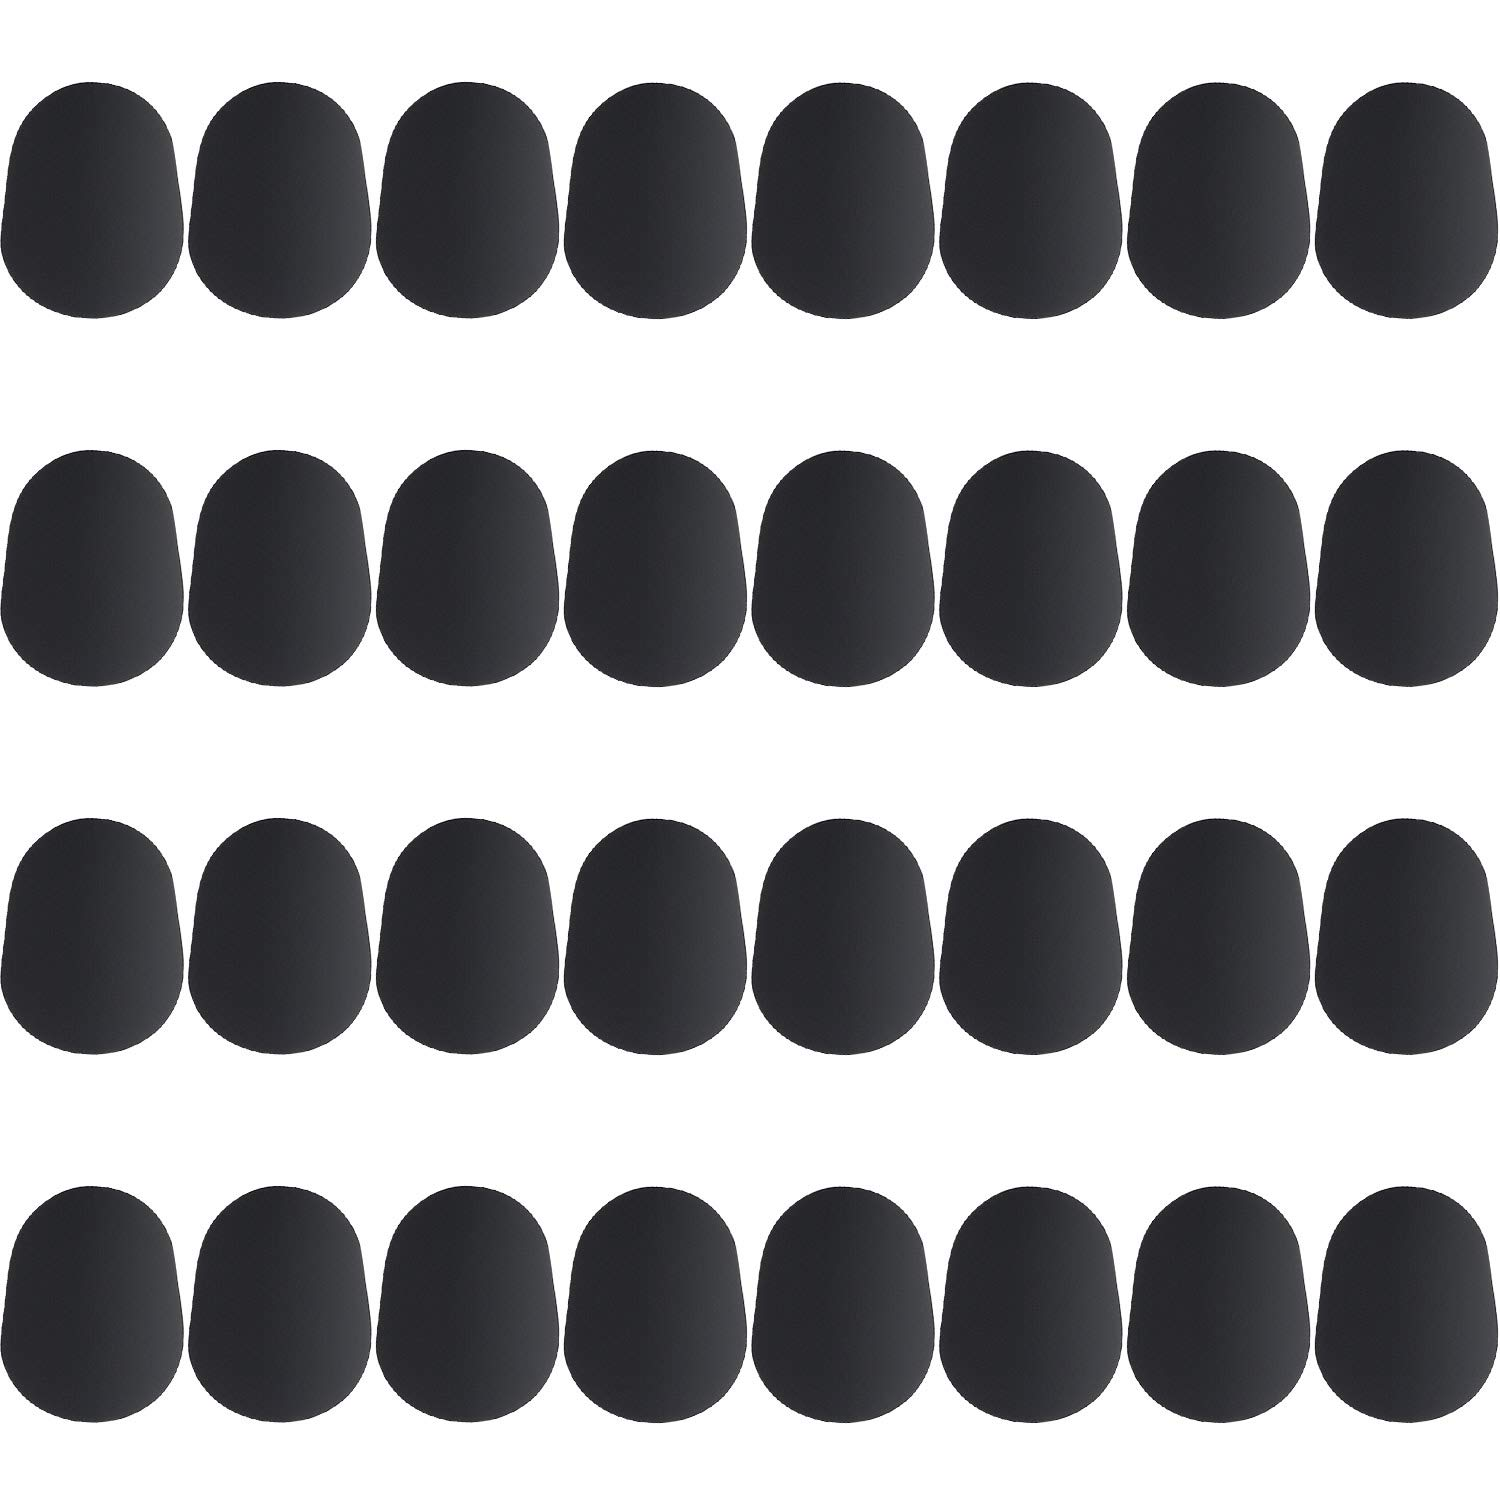 Boao 32 Pieces Mouthpiece Cushion 0.8 mm Mouthpiece Patches for Alto and Tenor Saxophone and Clarinet, Black